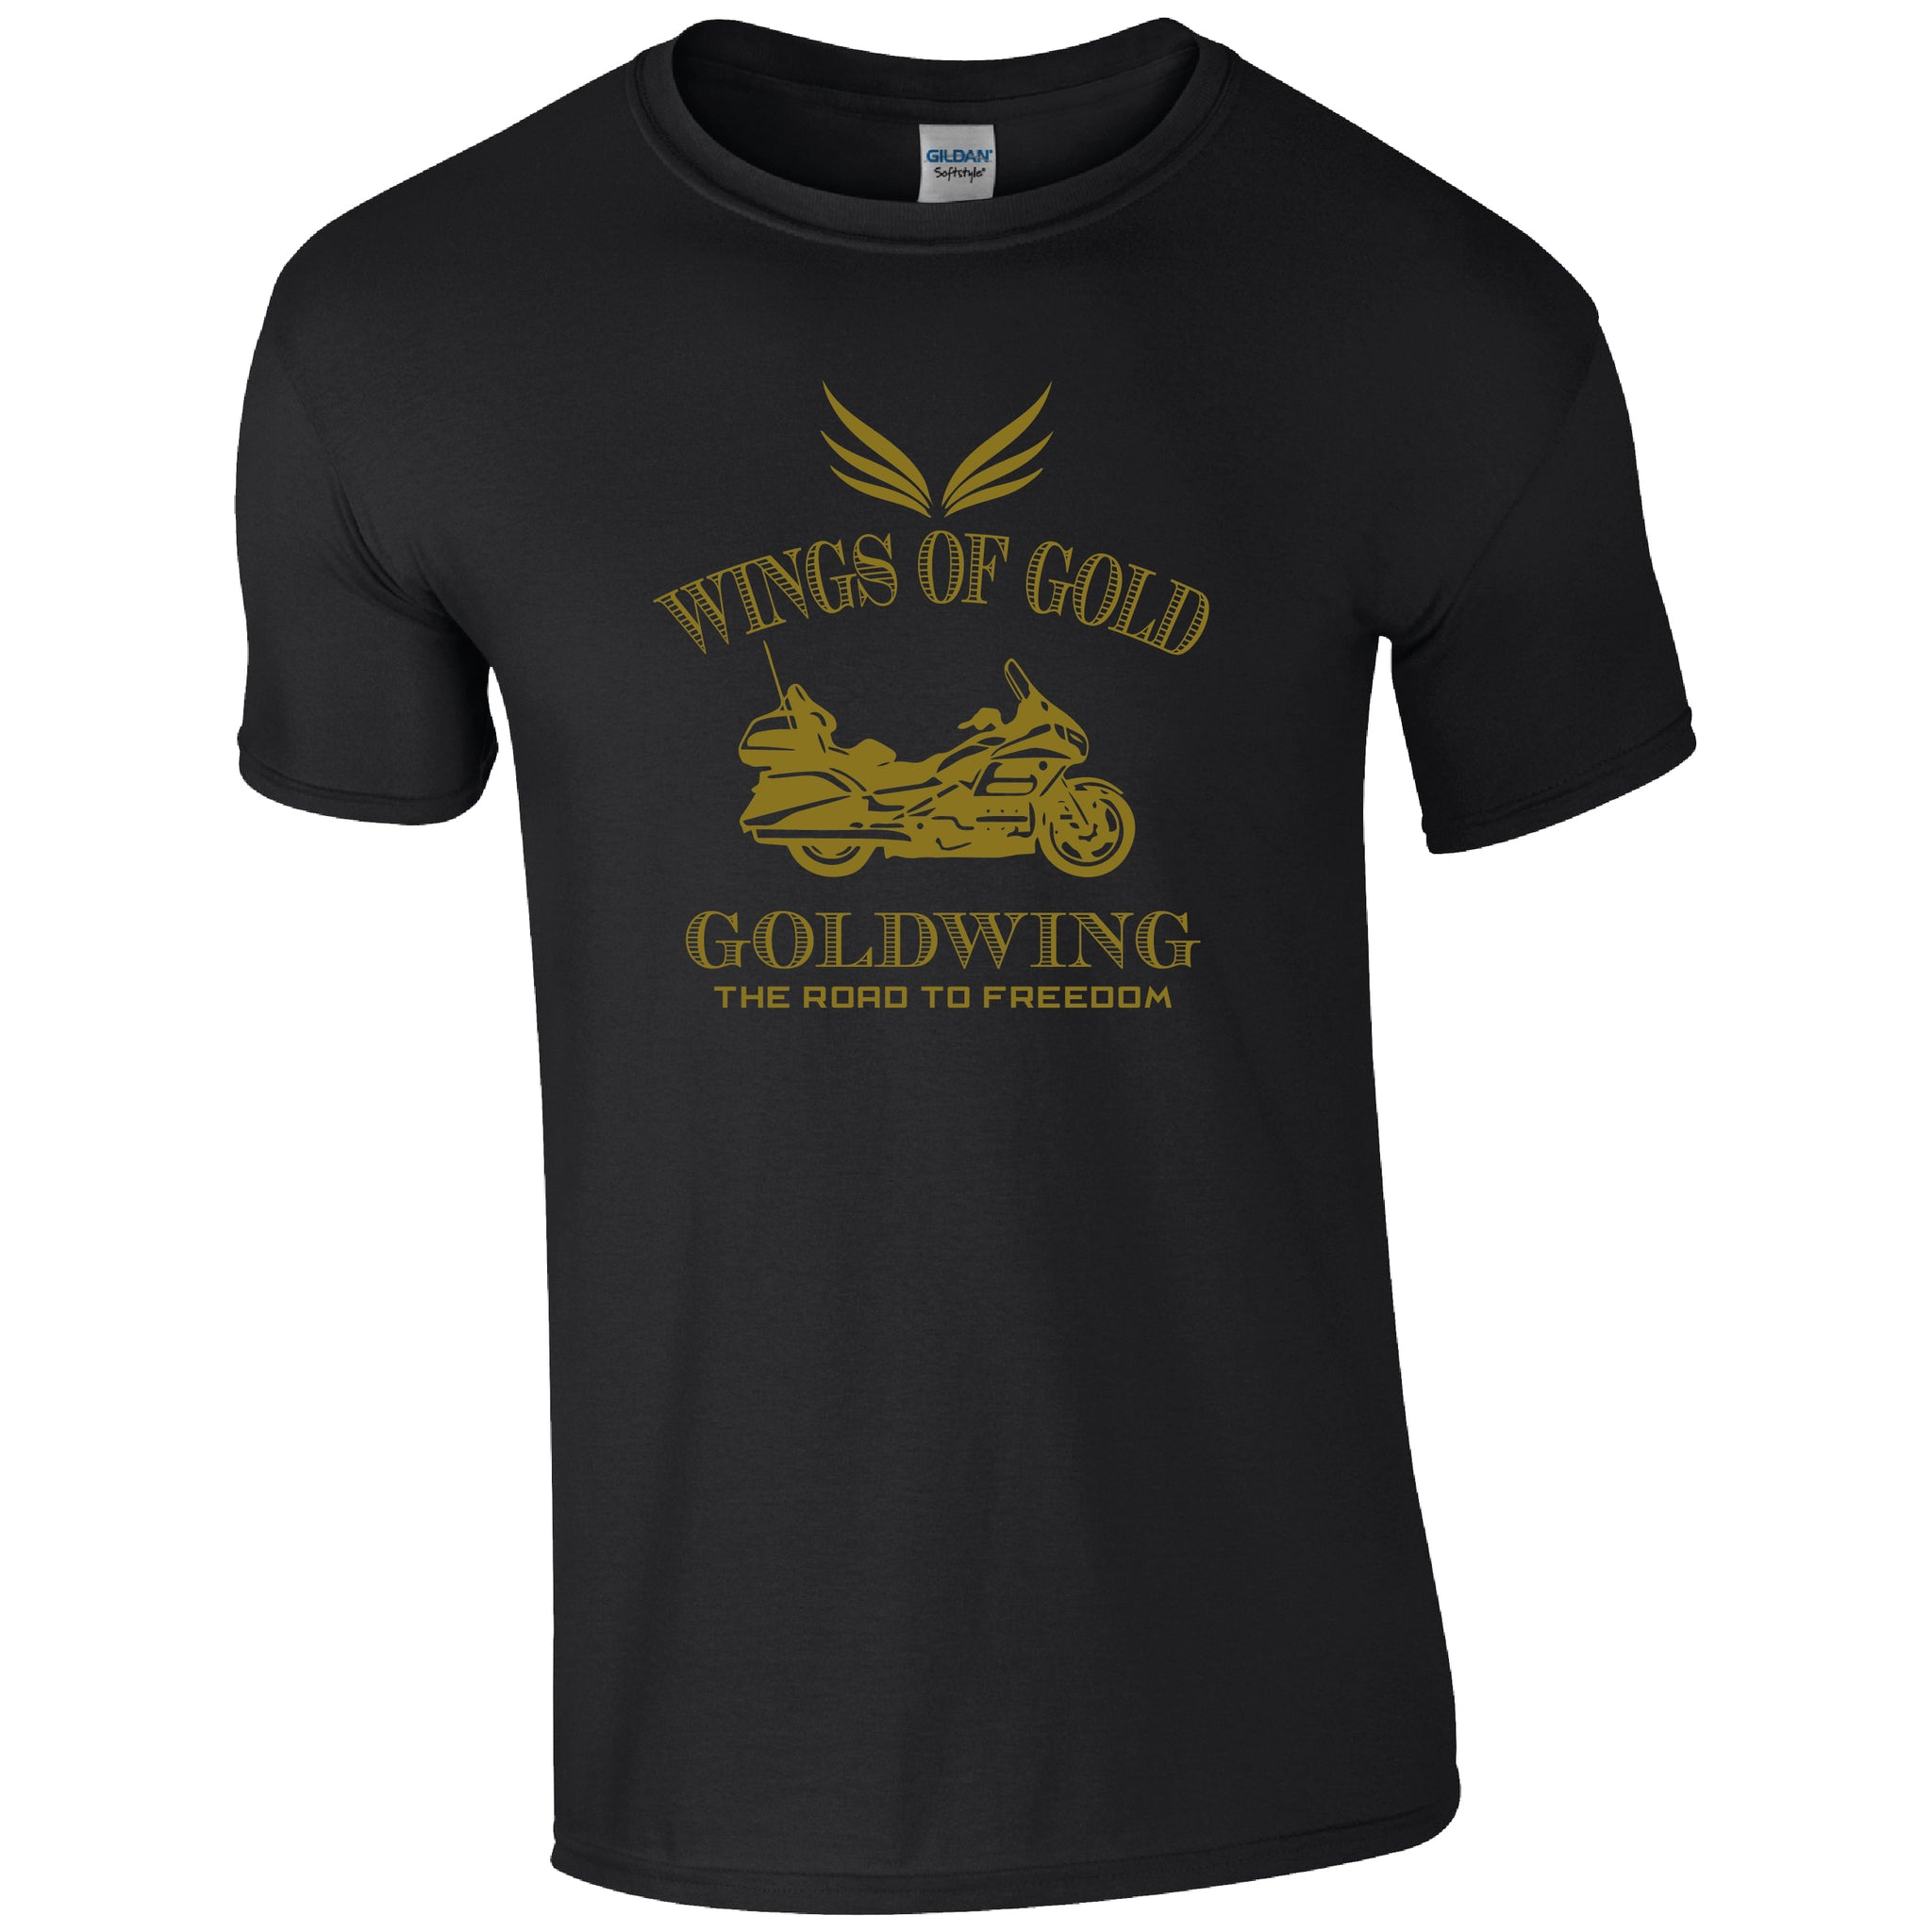 Wings of Gold, Goldwing T-Shirt